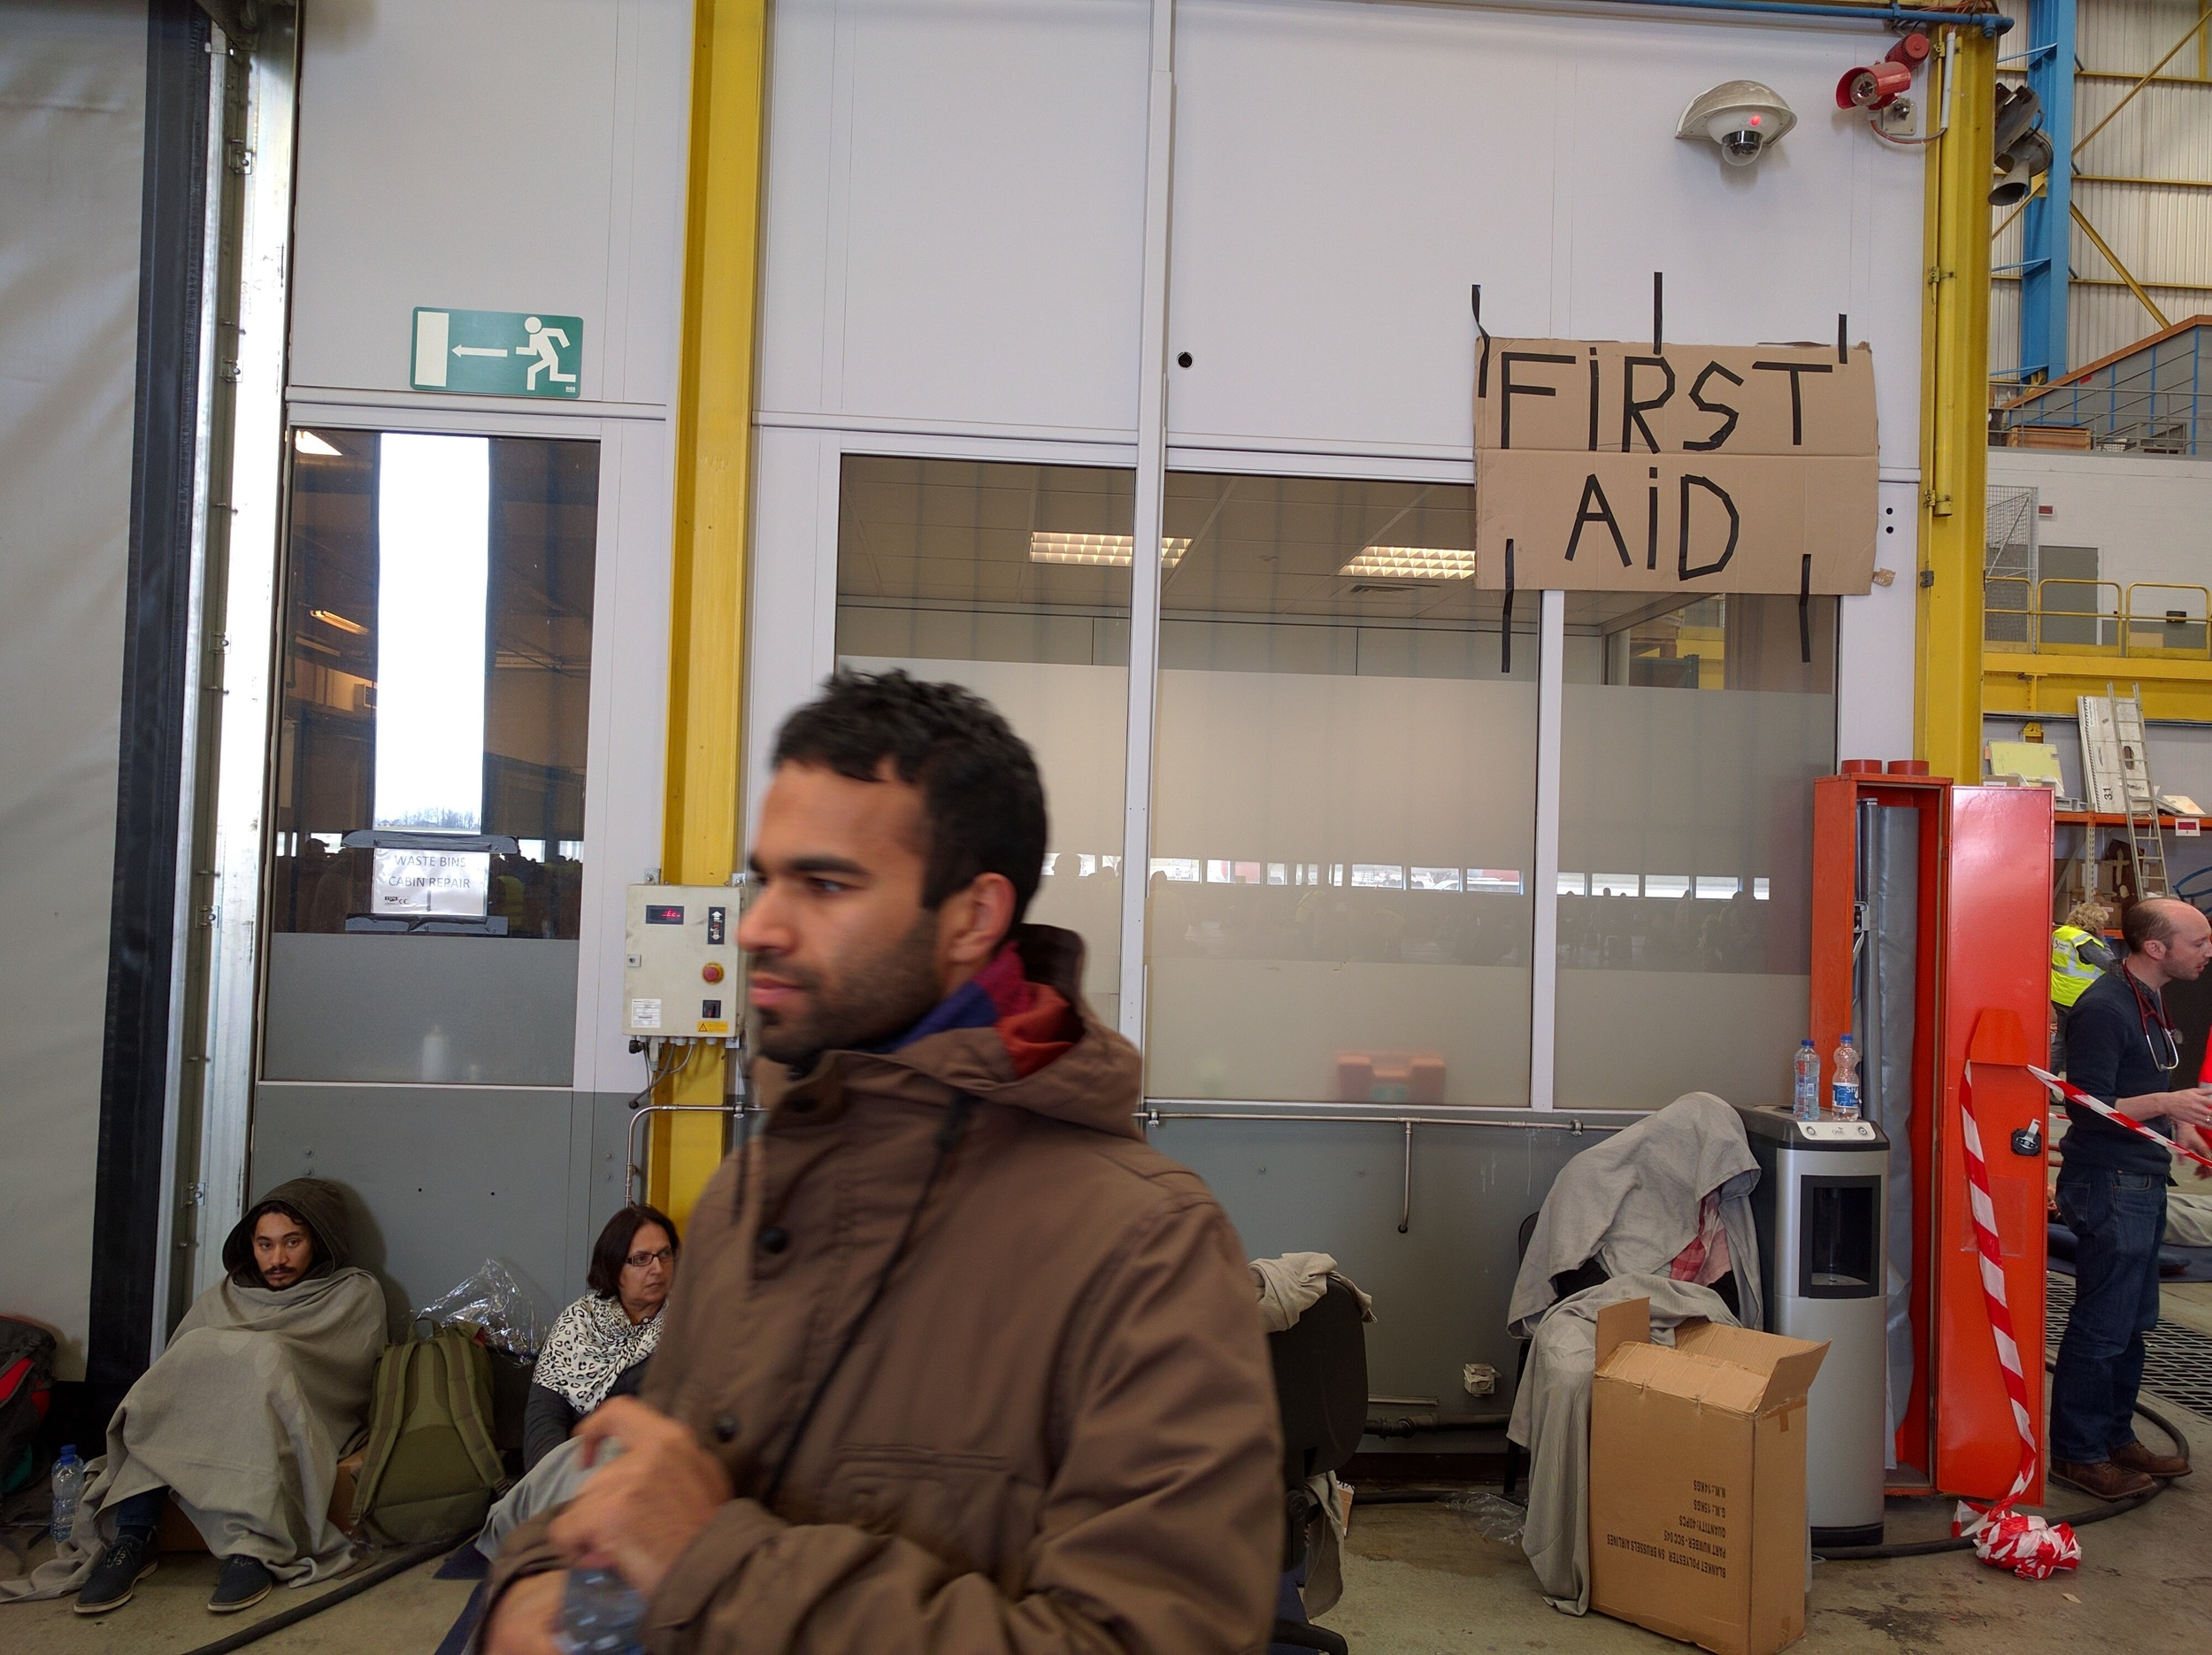 The makeshift First-Aid room. Supplies and space was limited, so not everyone could be looked after.